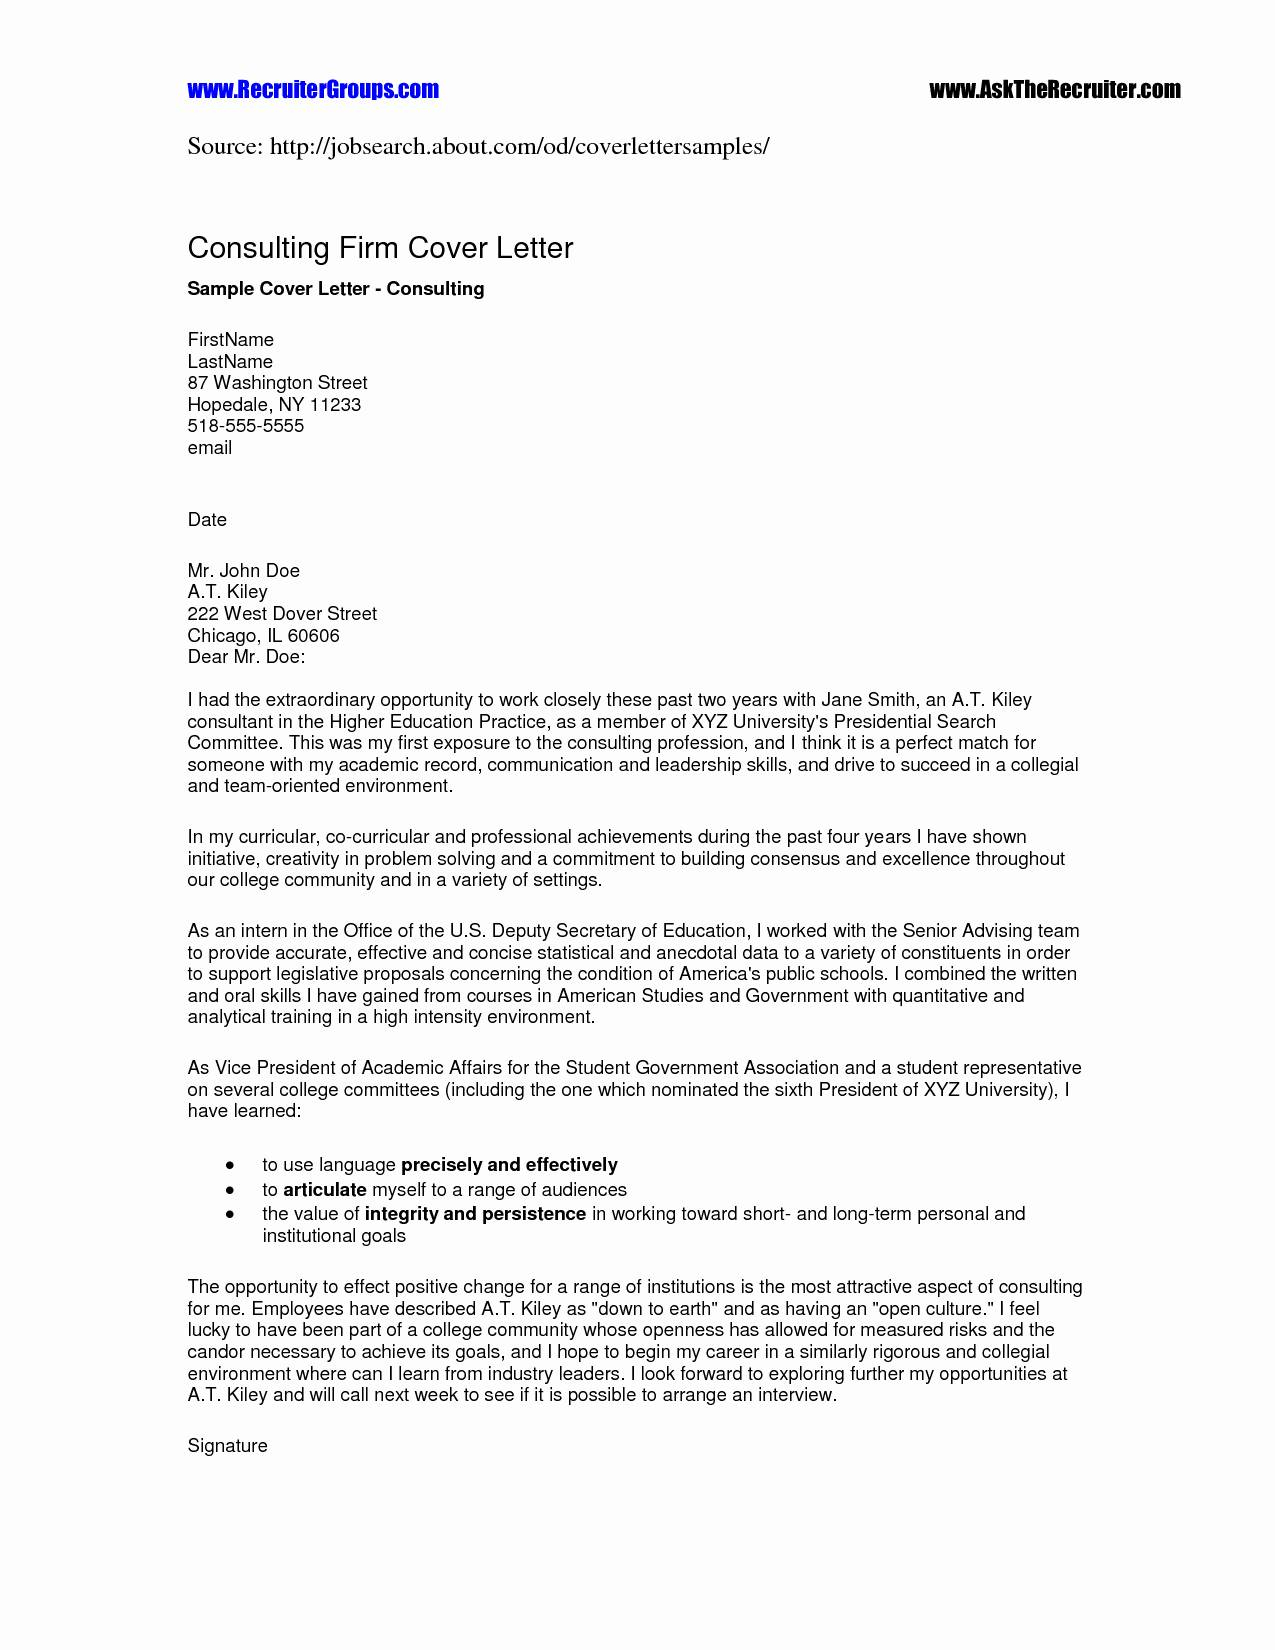 Relocation Cover Letter Template - Willing to Relocate In Cover Letter Best How to Write Cover